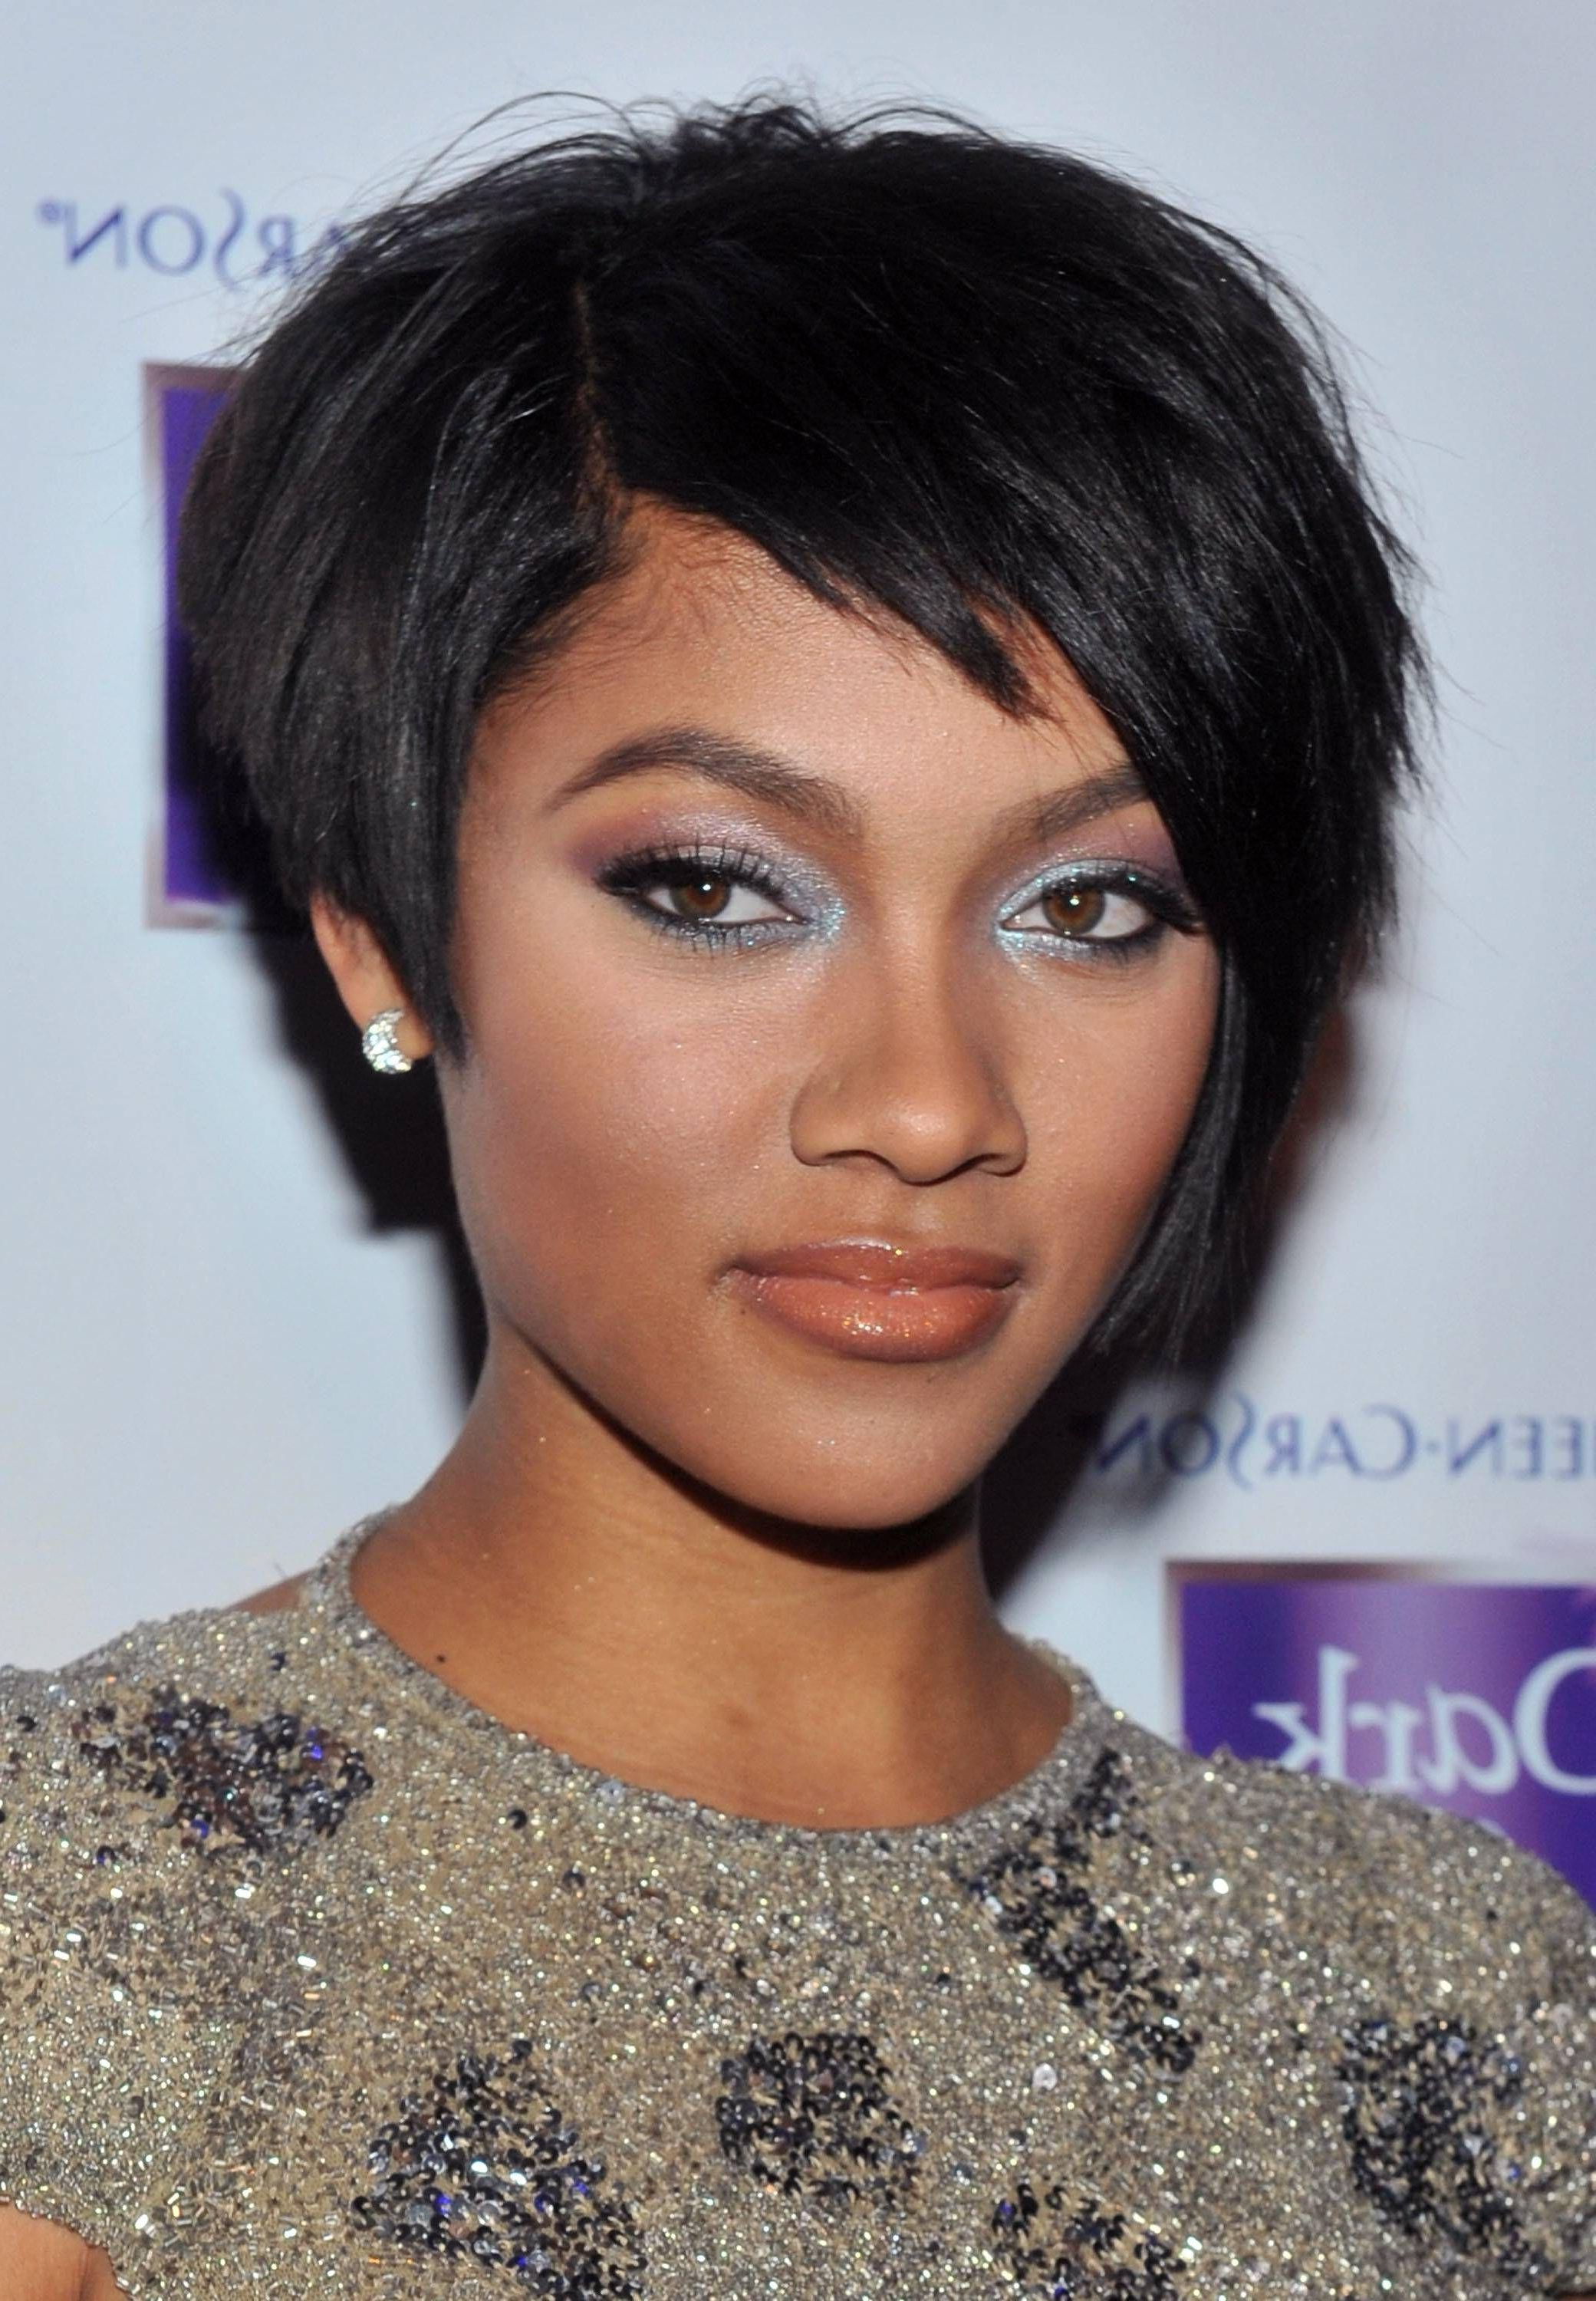 Beautiful Short Hairstyles For Black Women With Round Faces 2016 Concept Regarding Short Hairstyles For Round Faces Black Hair (View 23 of 25)